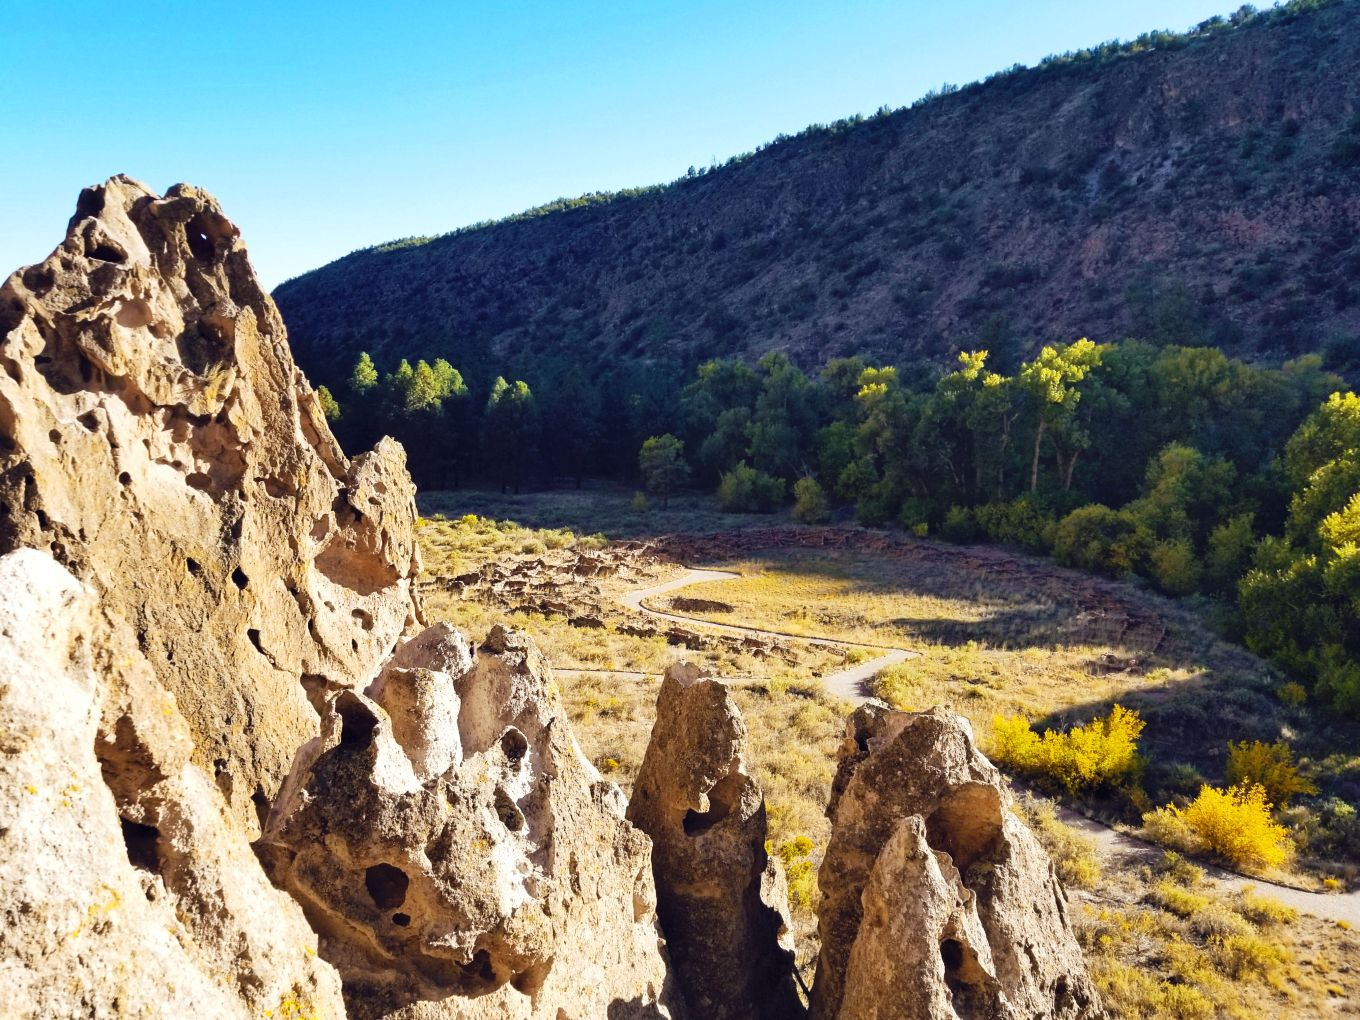 View of Tyuonyi ruins from cave dwellings, Bandelier National Monument